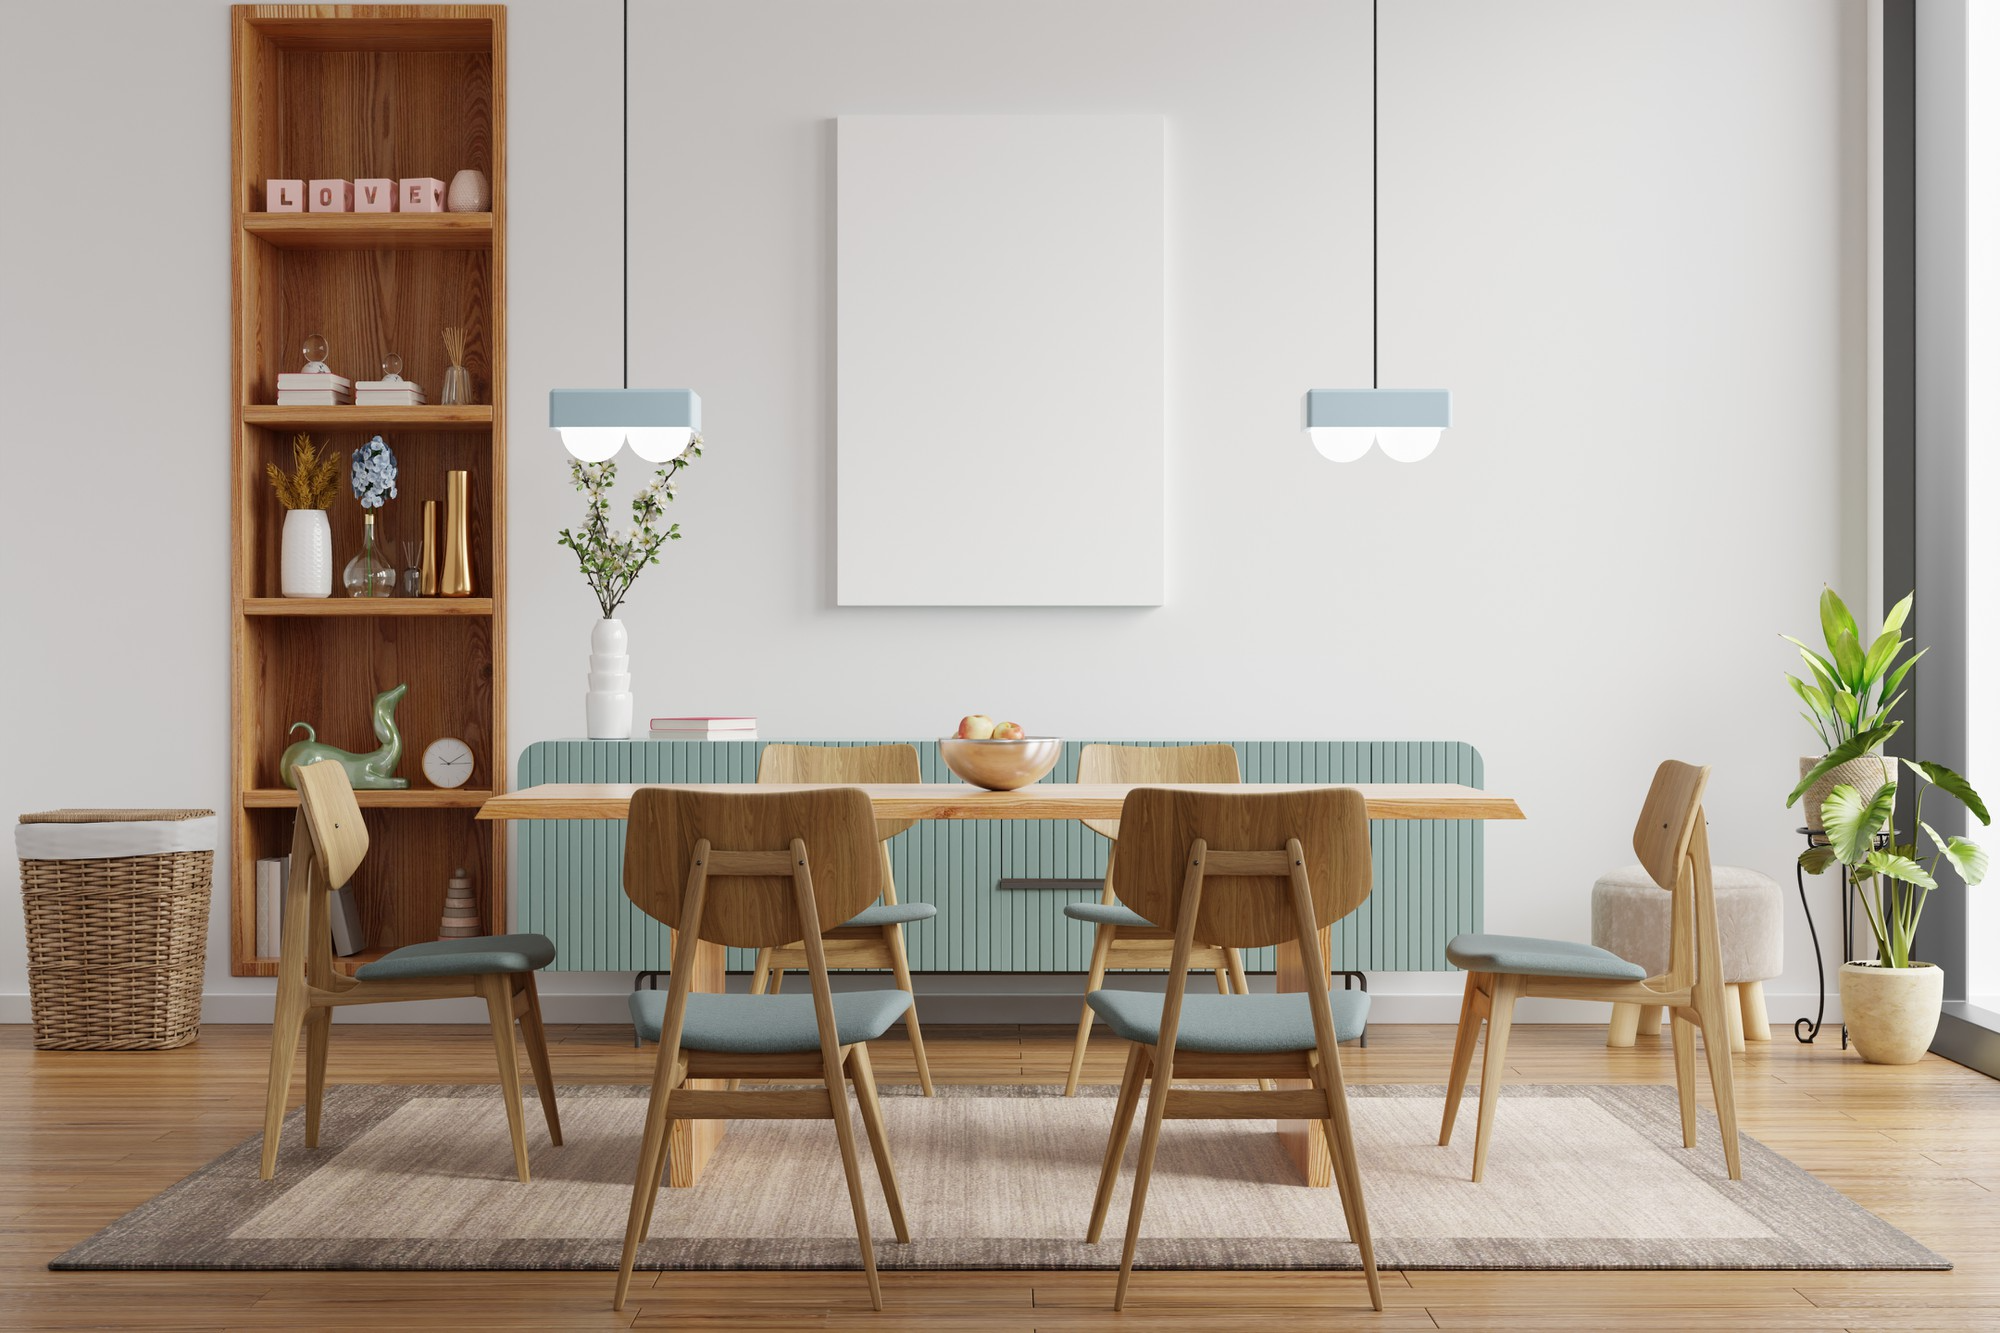 Modern dining room with wooden table and chairs, wooden shelf, and natural fiber rg